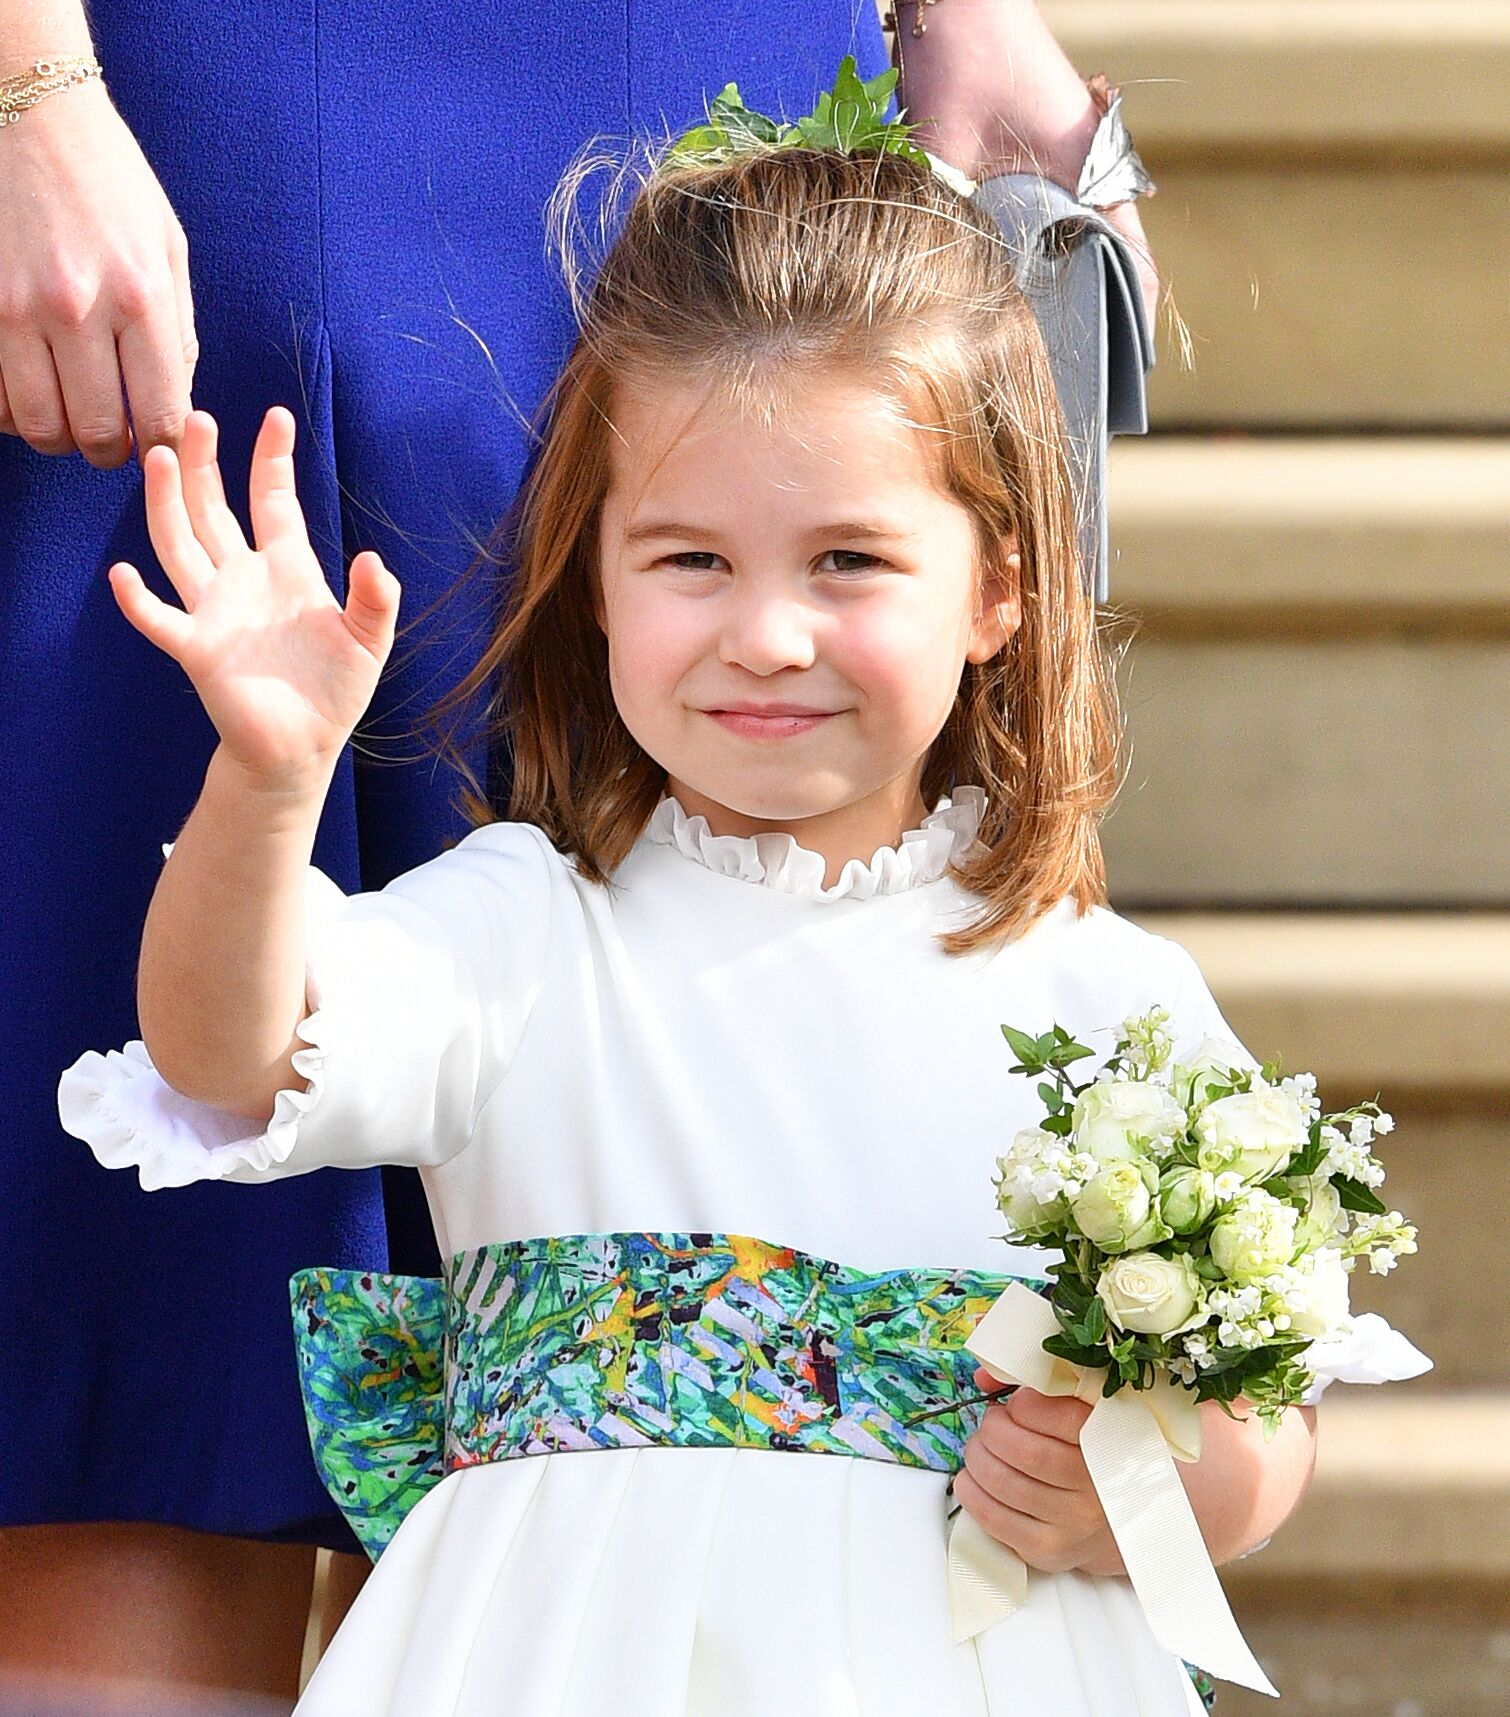 Princess Charlotte of Cambridge attends the wedding of Princess Eugenie of York and Jack Brooksbank at St George's Chapel on October 12, 2018 in Windsor, England. | Photo: Getty Images